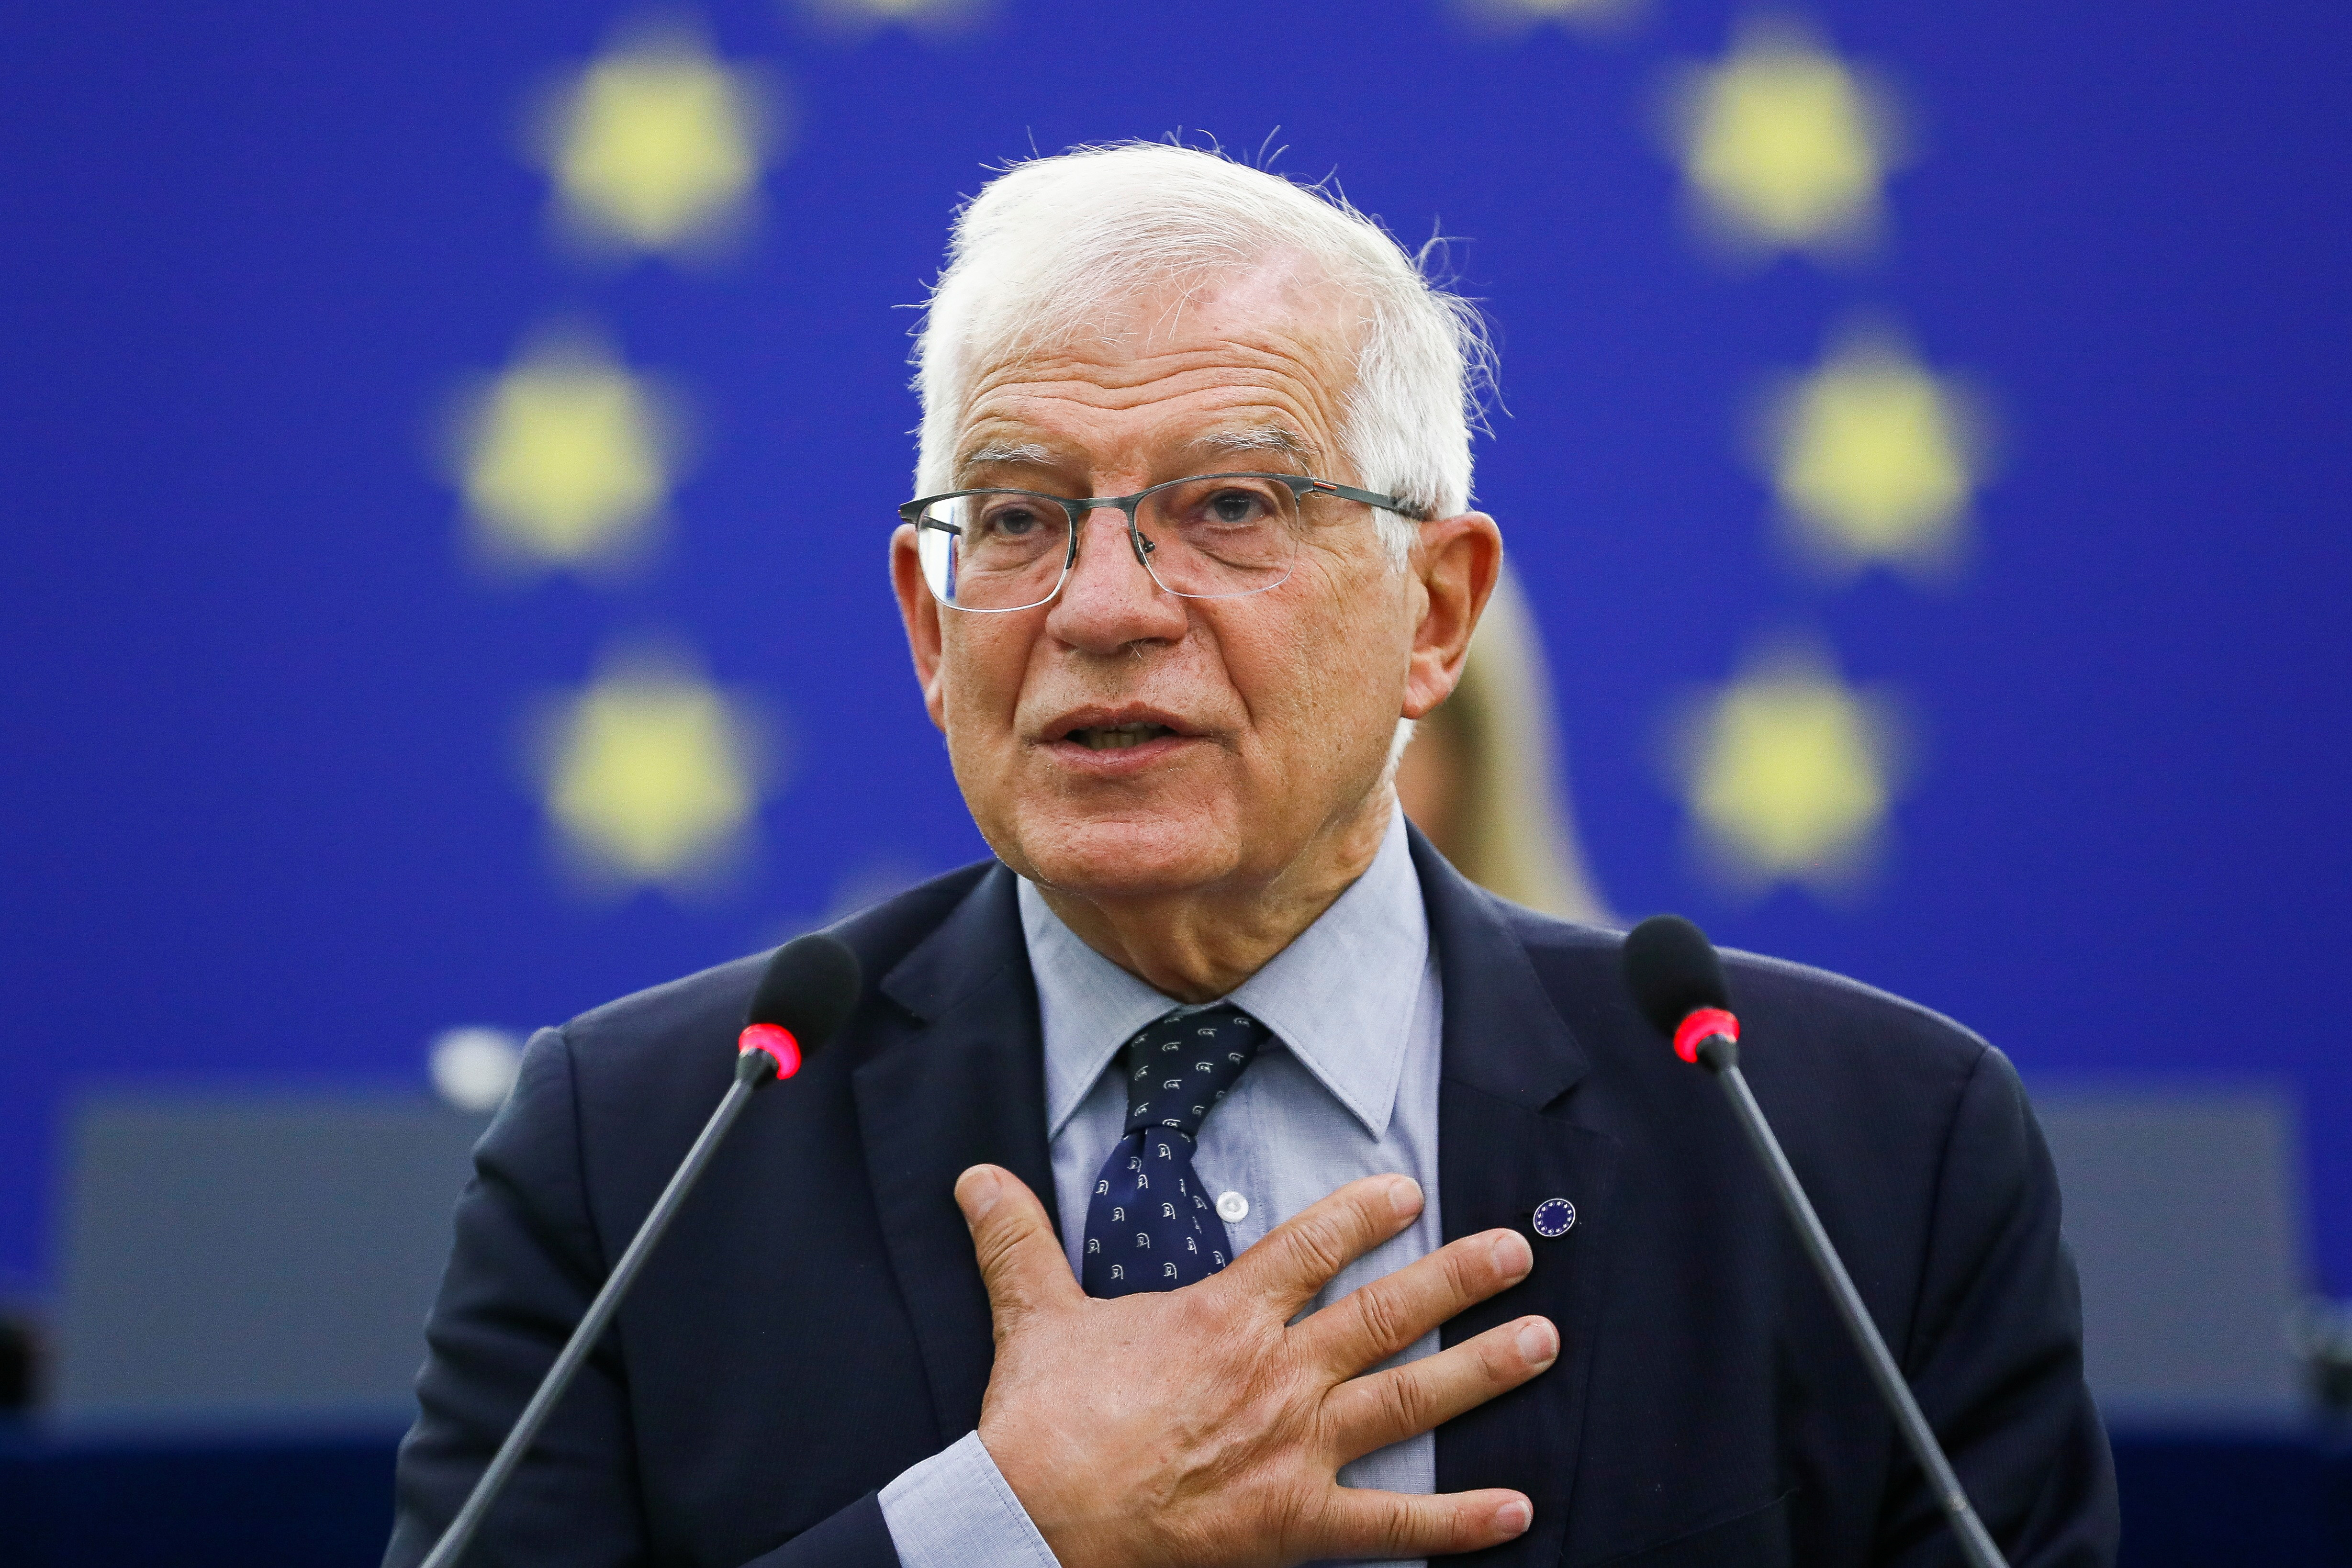 EU Foreign Policy Chief Josep Borrell delivers a speech on the situation in Afghanistan during a plenary session at the European Parliament in Strasbourg, France, September 14, 2021. Julien Warnand/Pool via REUTERS